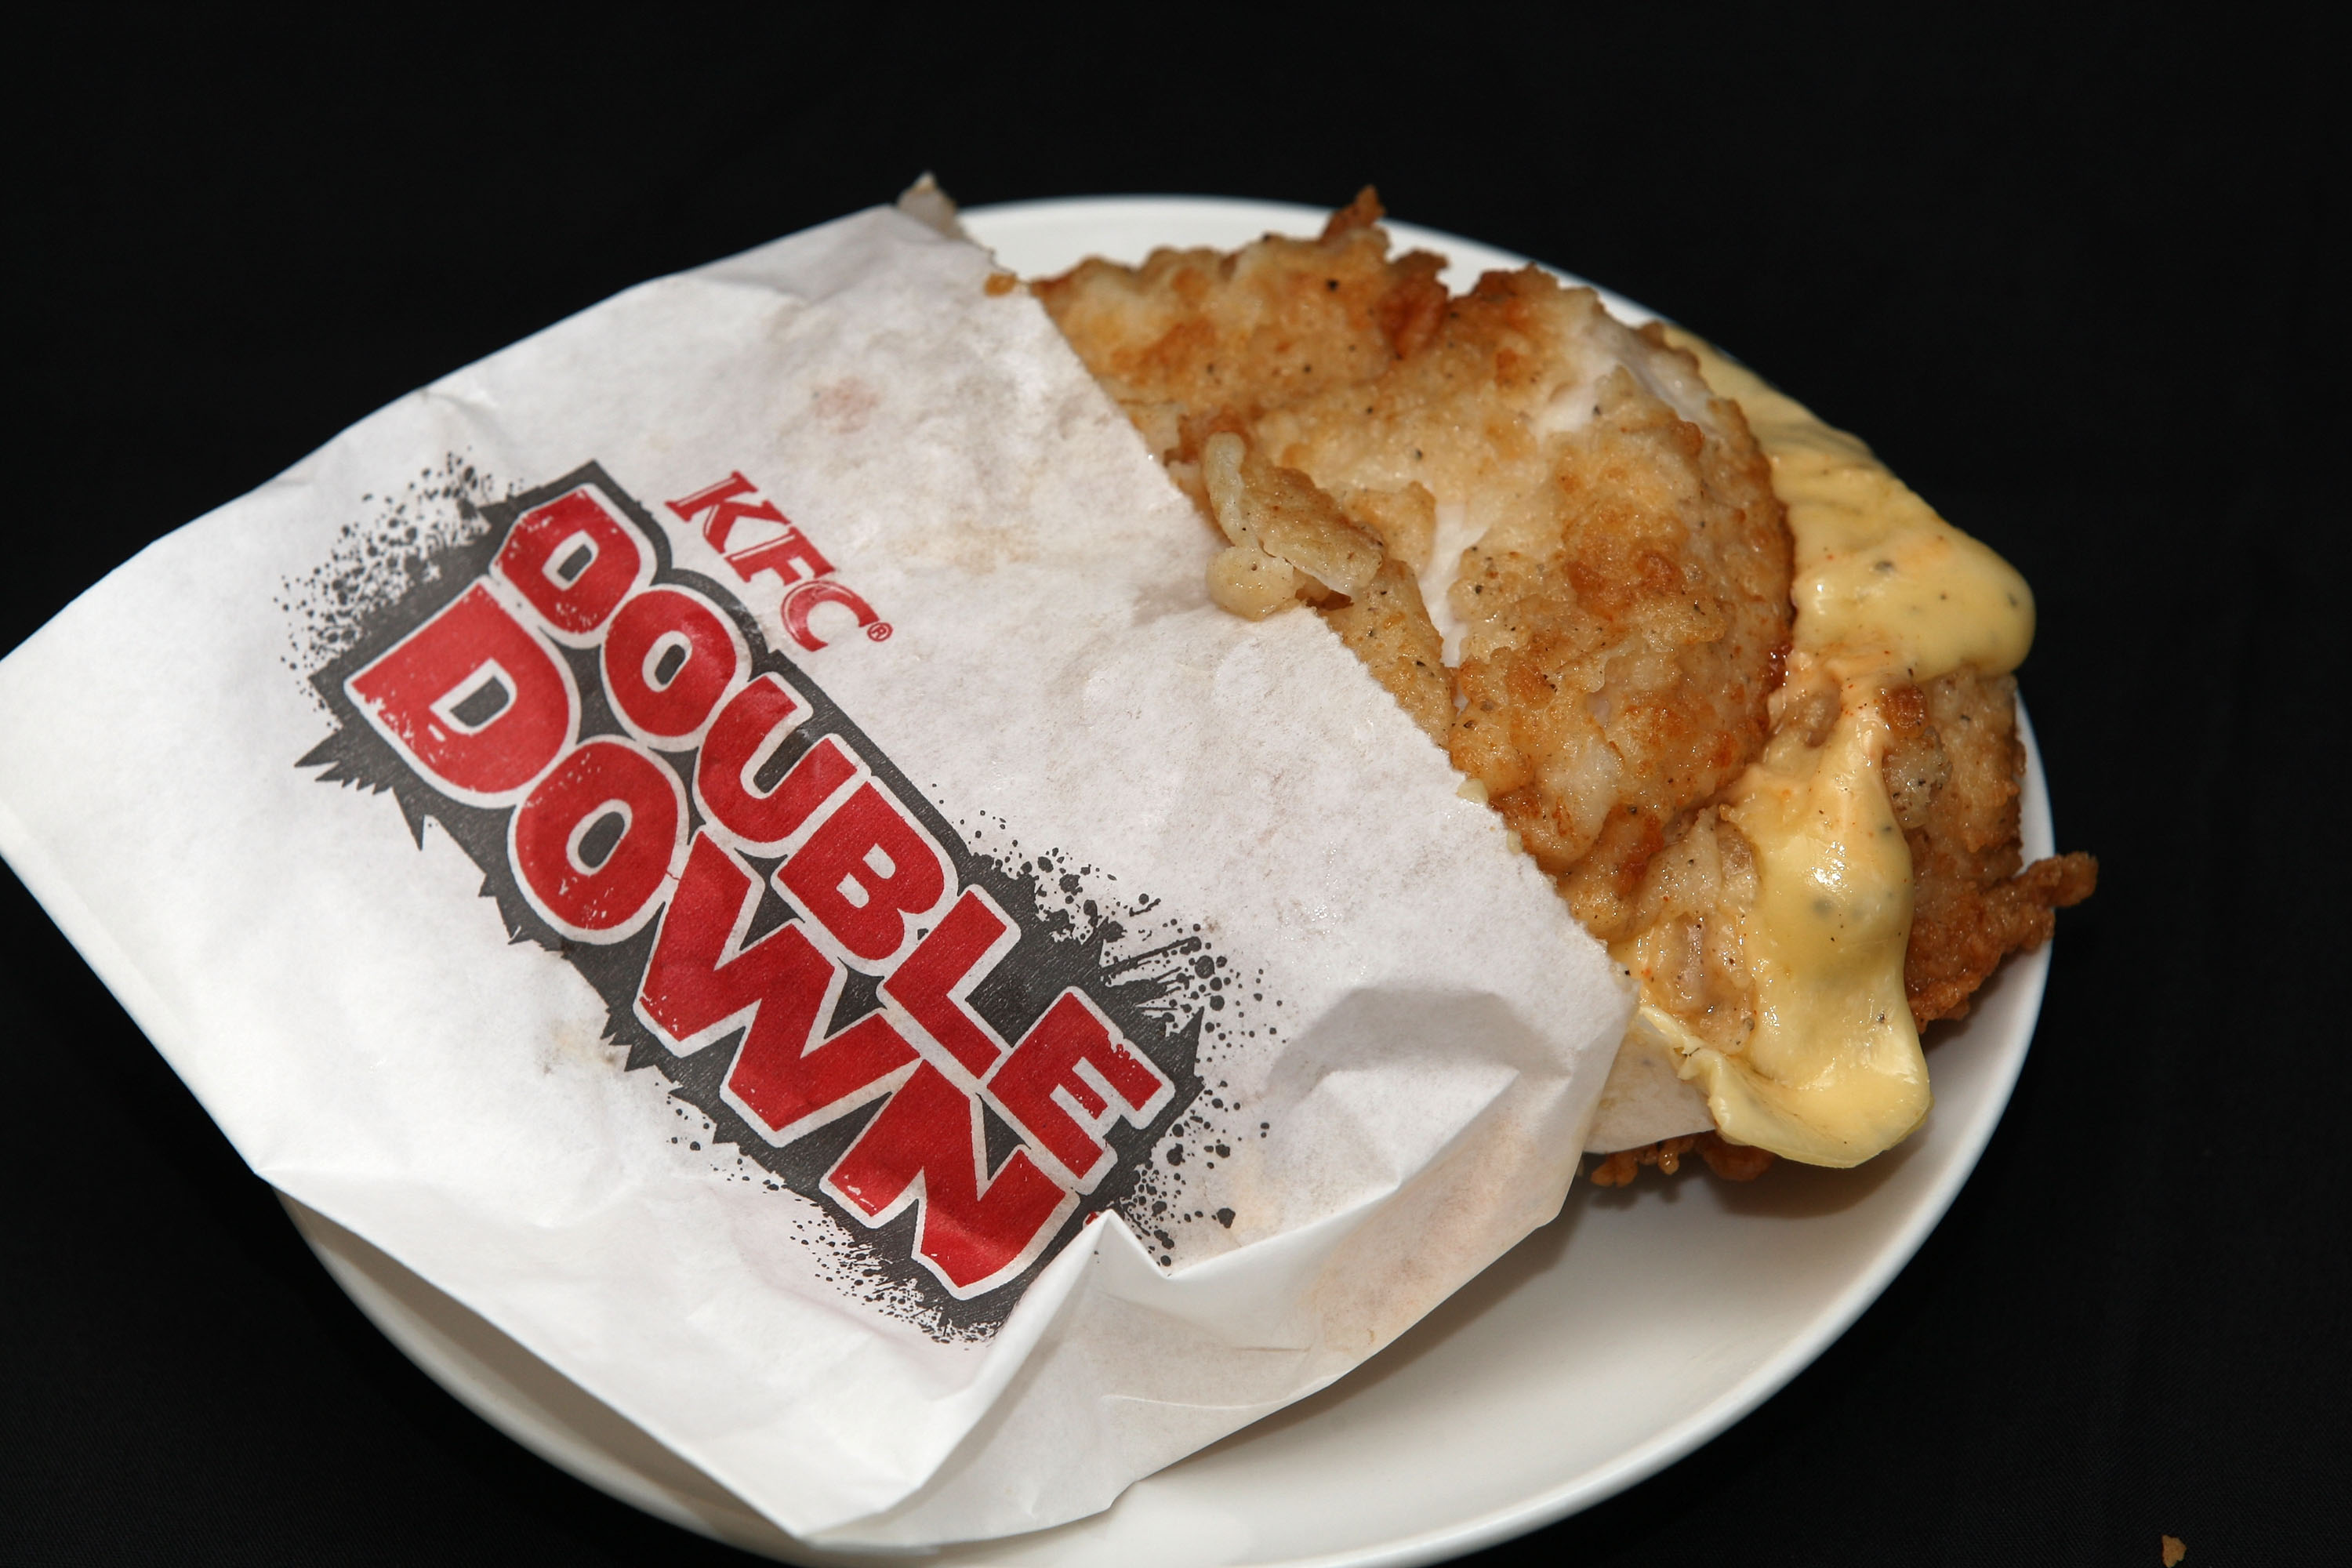 XXX YYY at XXX on May 10, 2011 in Auckland, New Zealand. The KFC 'Double Down' is a 604-calorie 'bunless' burger that consists of two strips of bacon, cheese and 'special sauce' served between two KFC chicken fillets and has been a hot topic after being condemned by nutritionists concerned with the high calorie and saturated fat content.